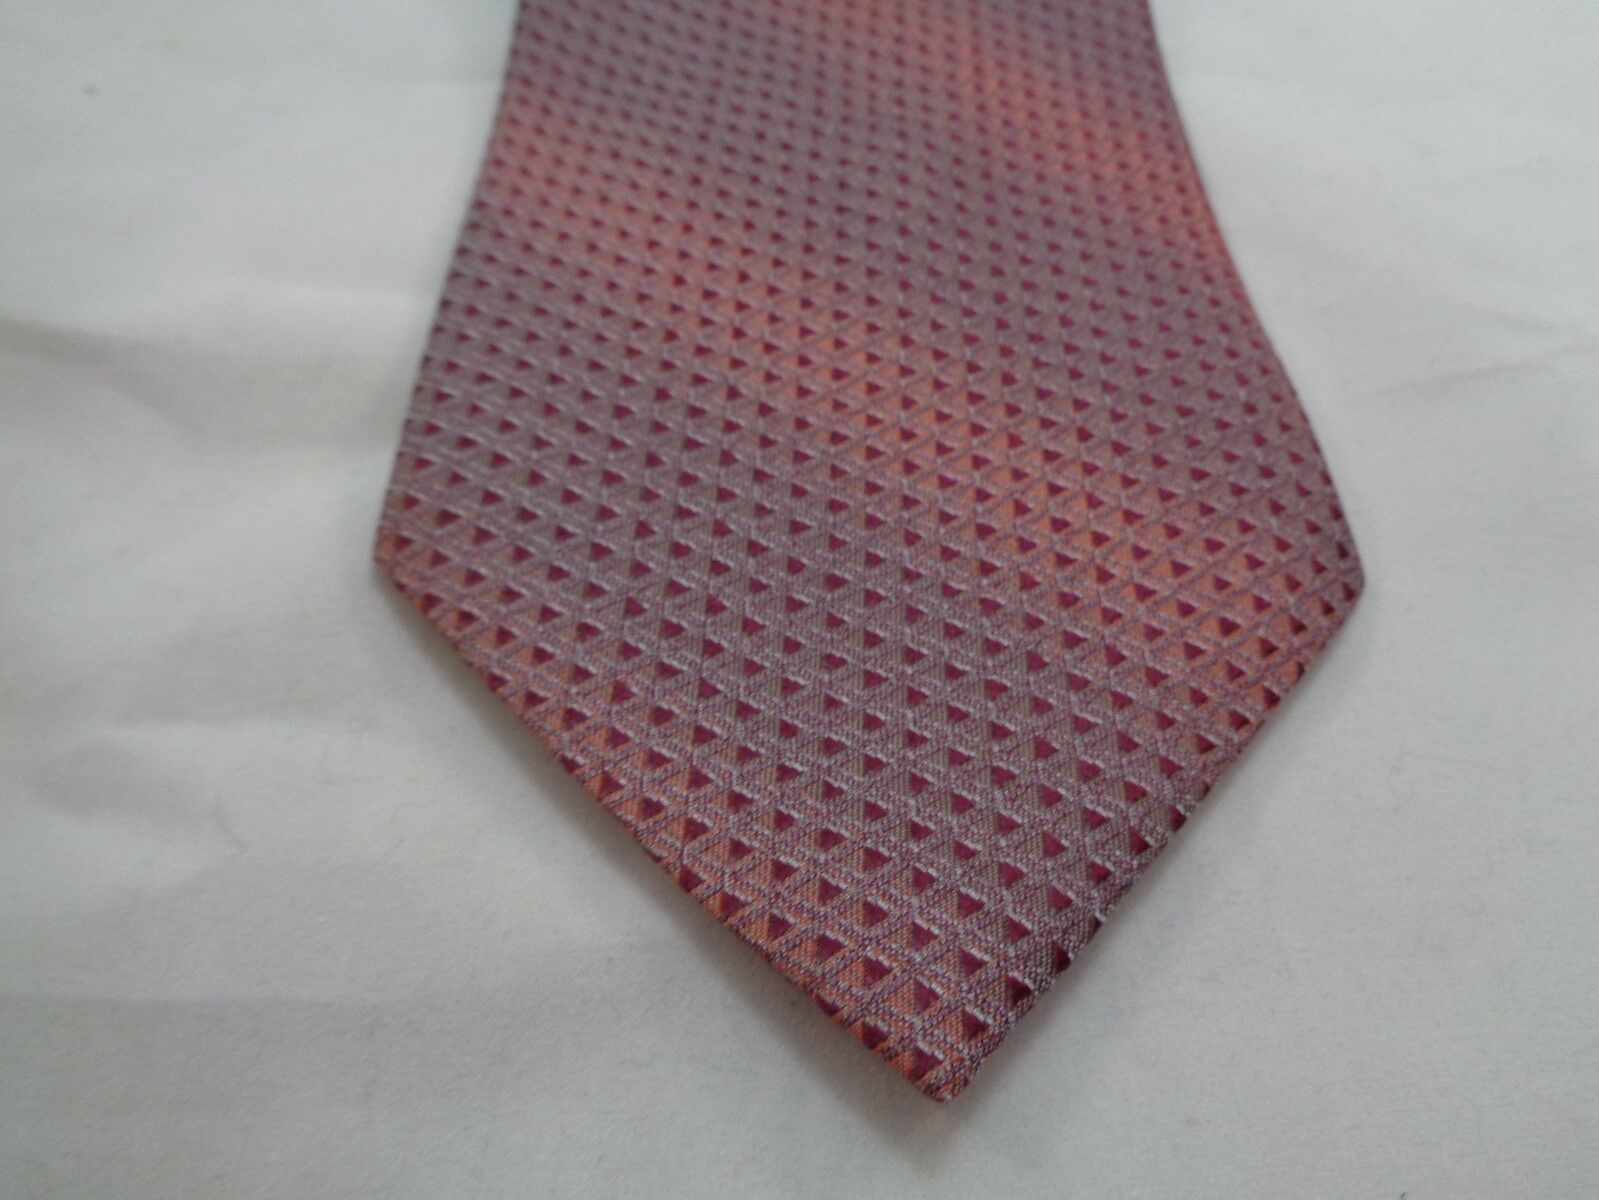 """KENNETH COLE PINK PURPLE MAROON SHINY TRIANGLES SILK NECKTIE 60"""" LONG 4"""" WIDE image 2"""